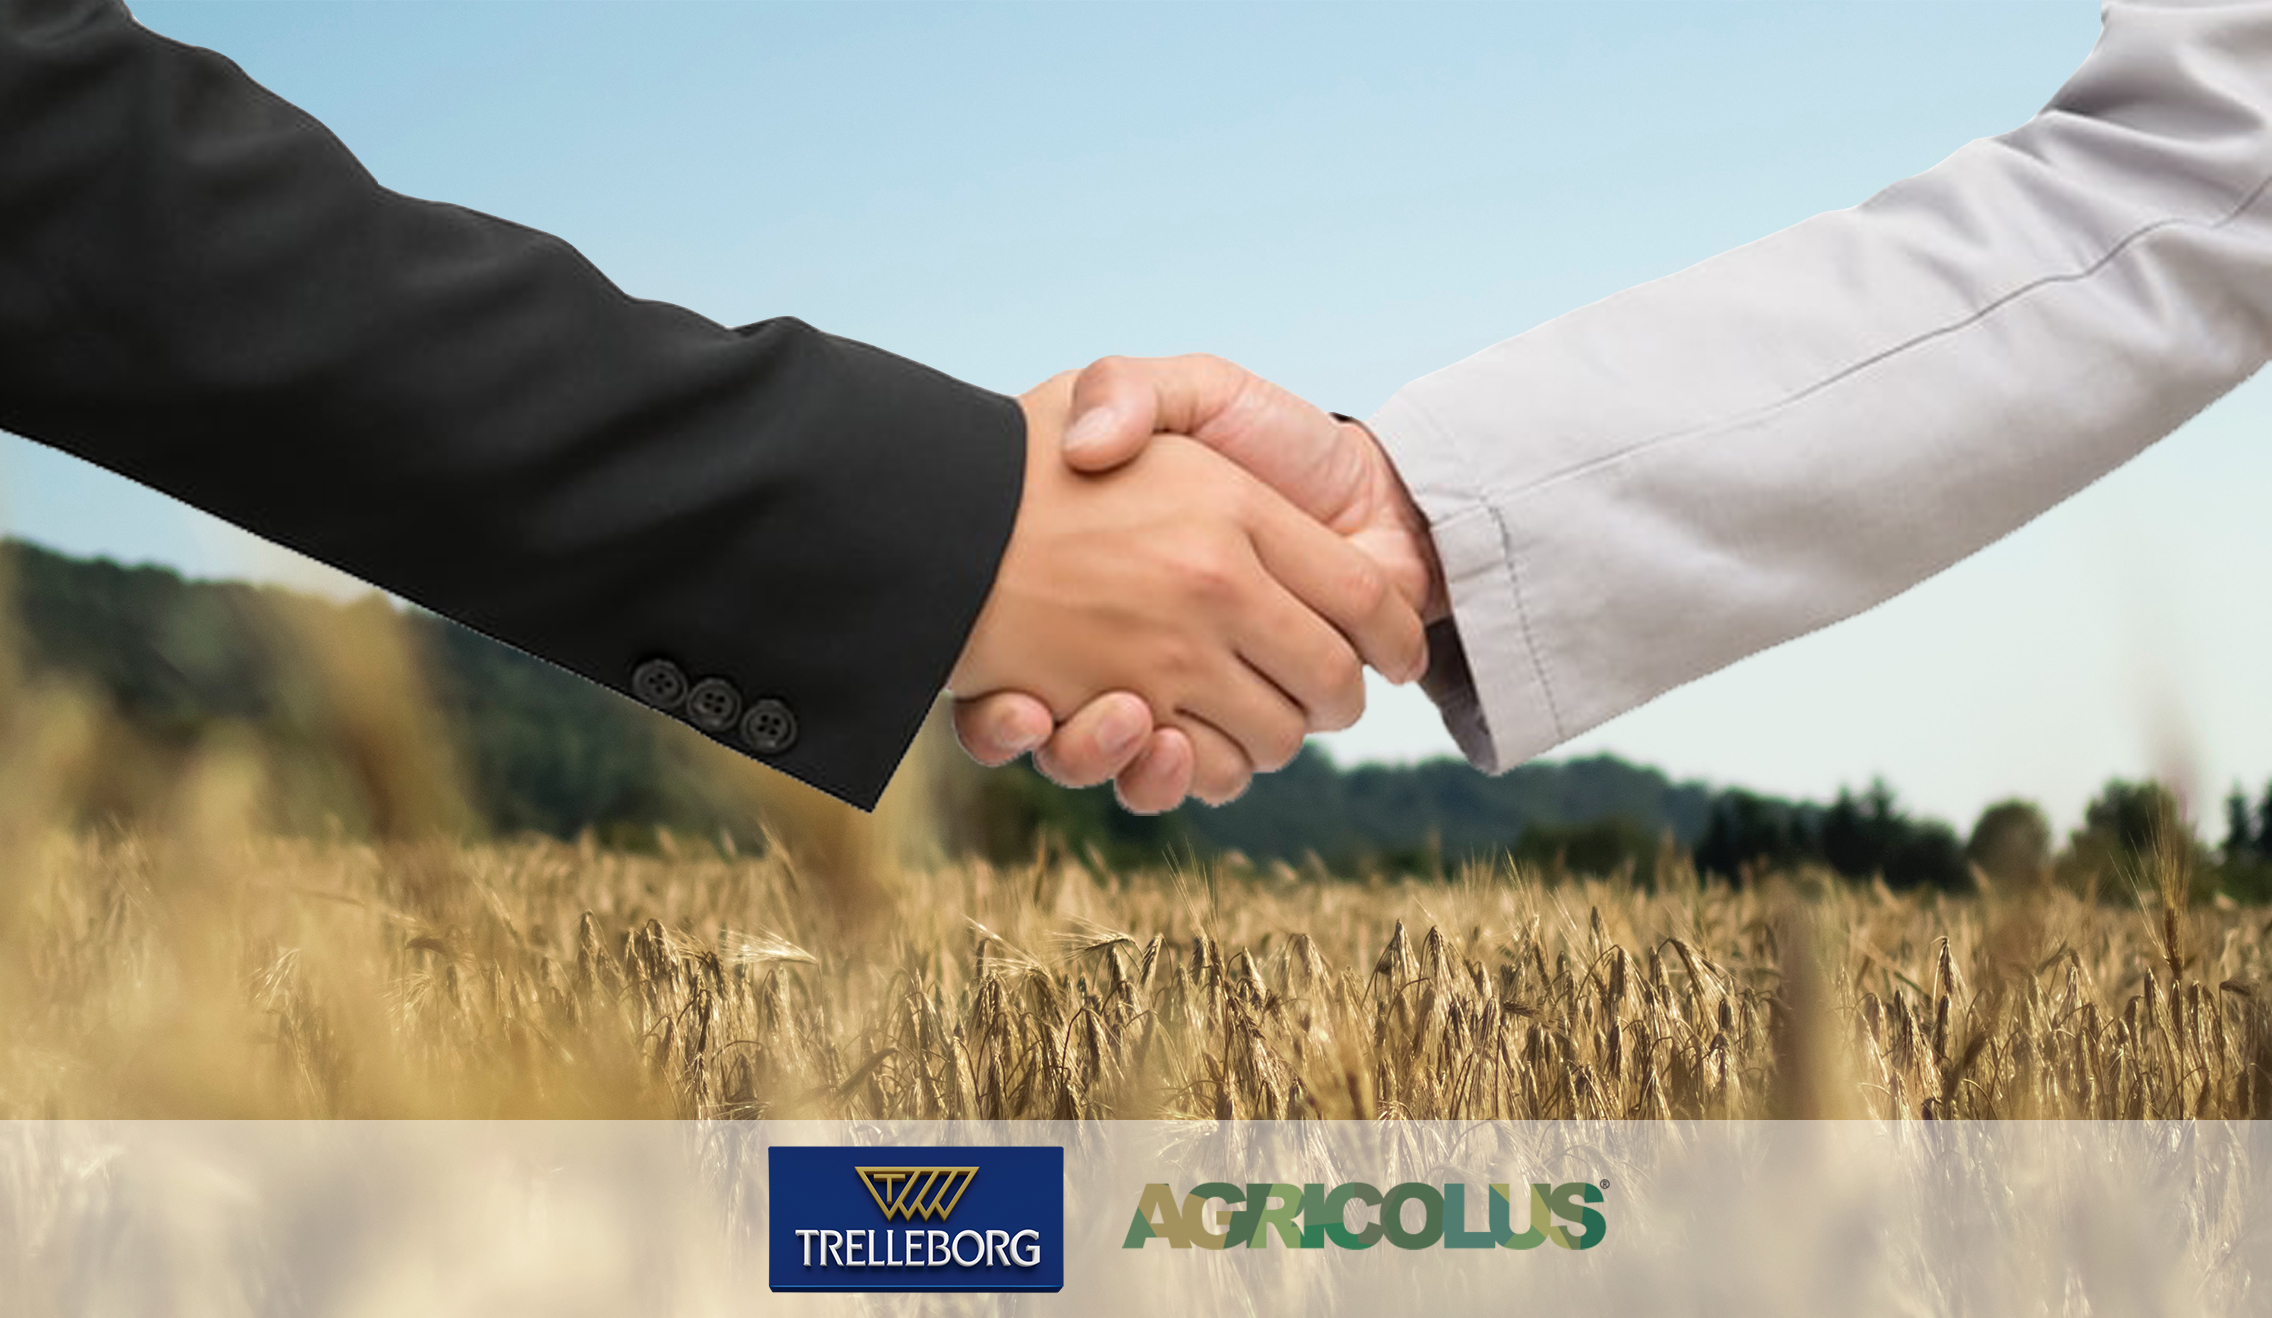 Trelleborg announces the partnership with Agricolus at Agritechnica 2019